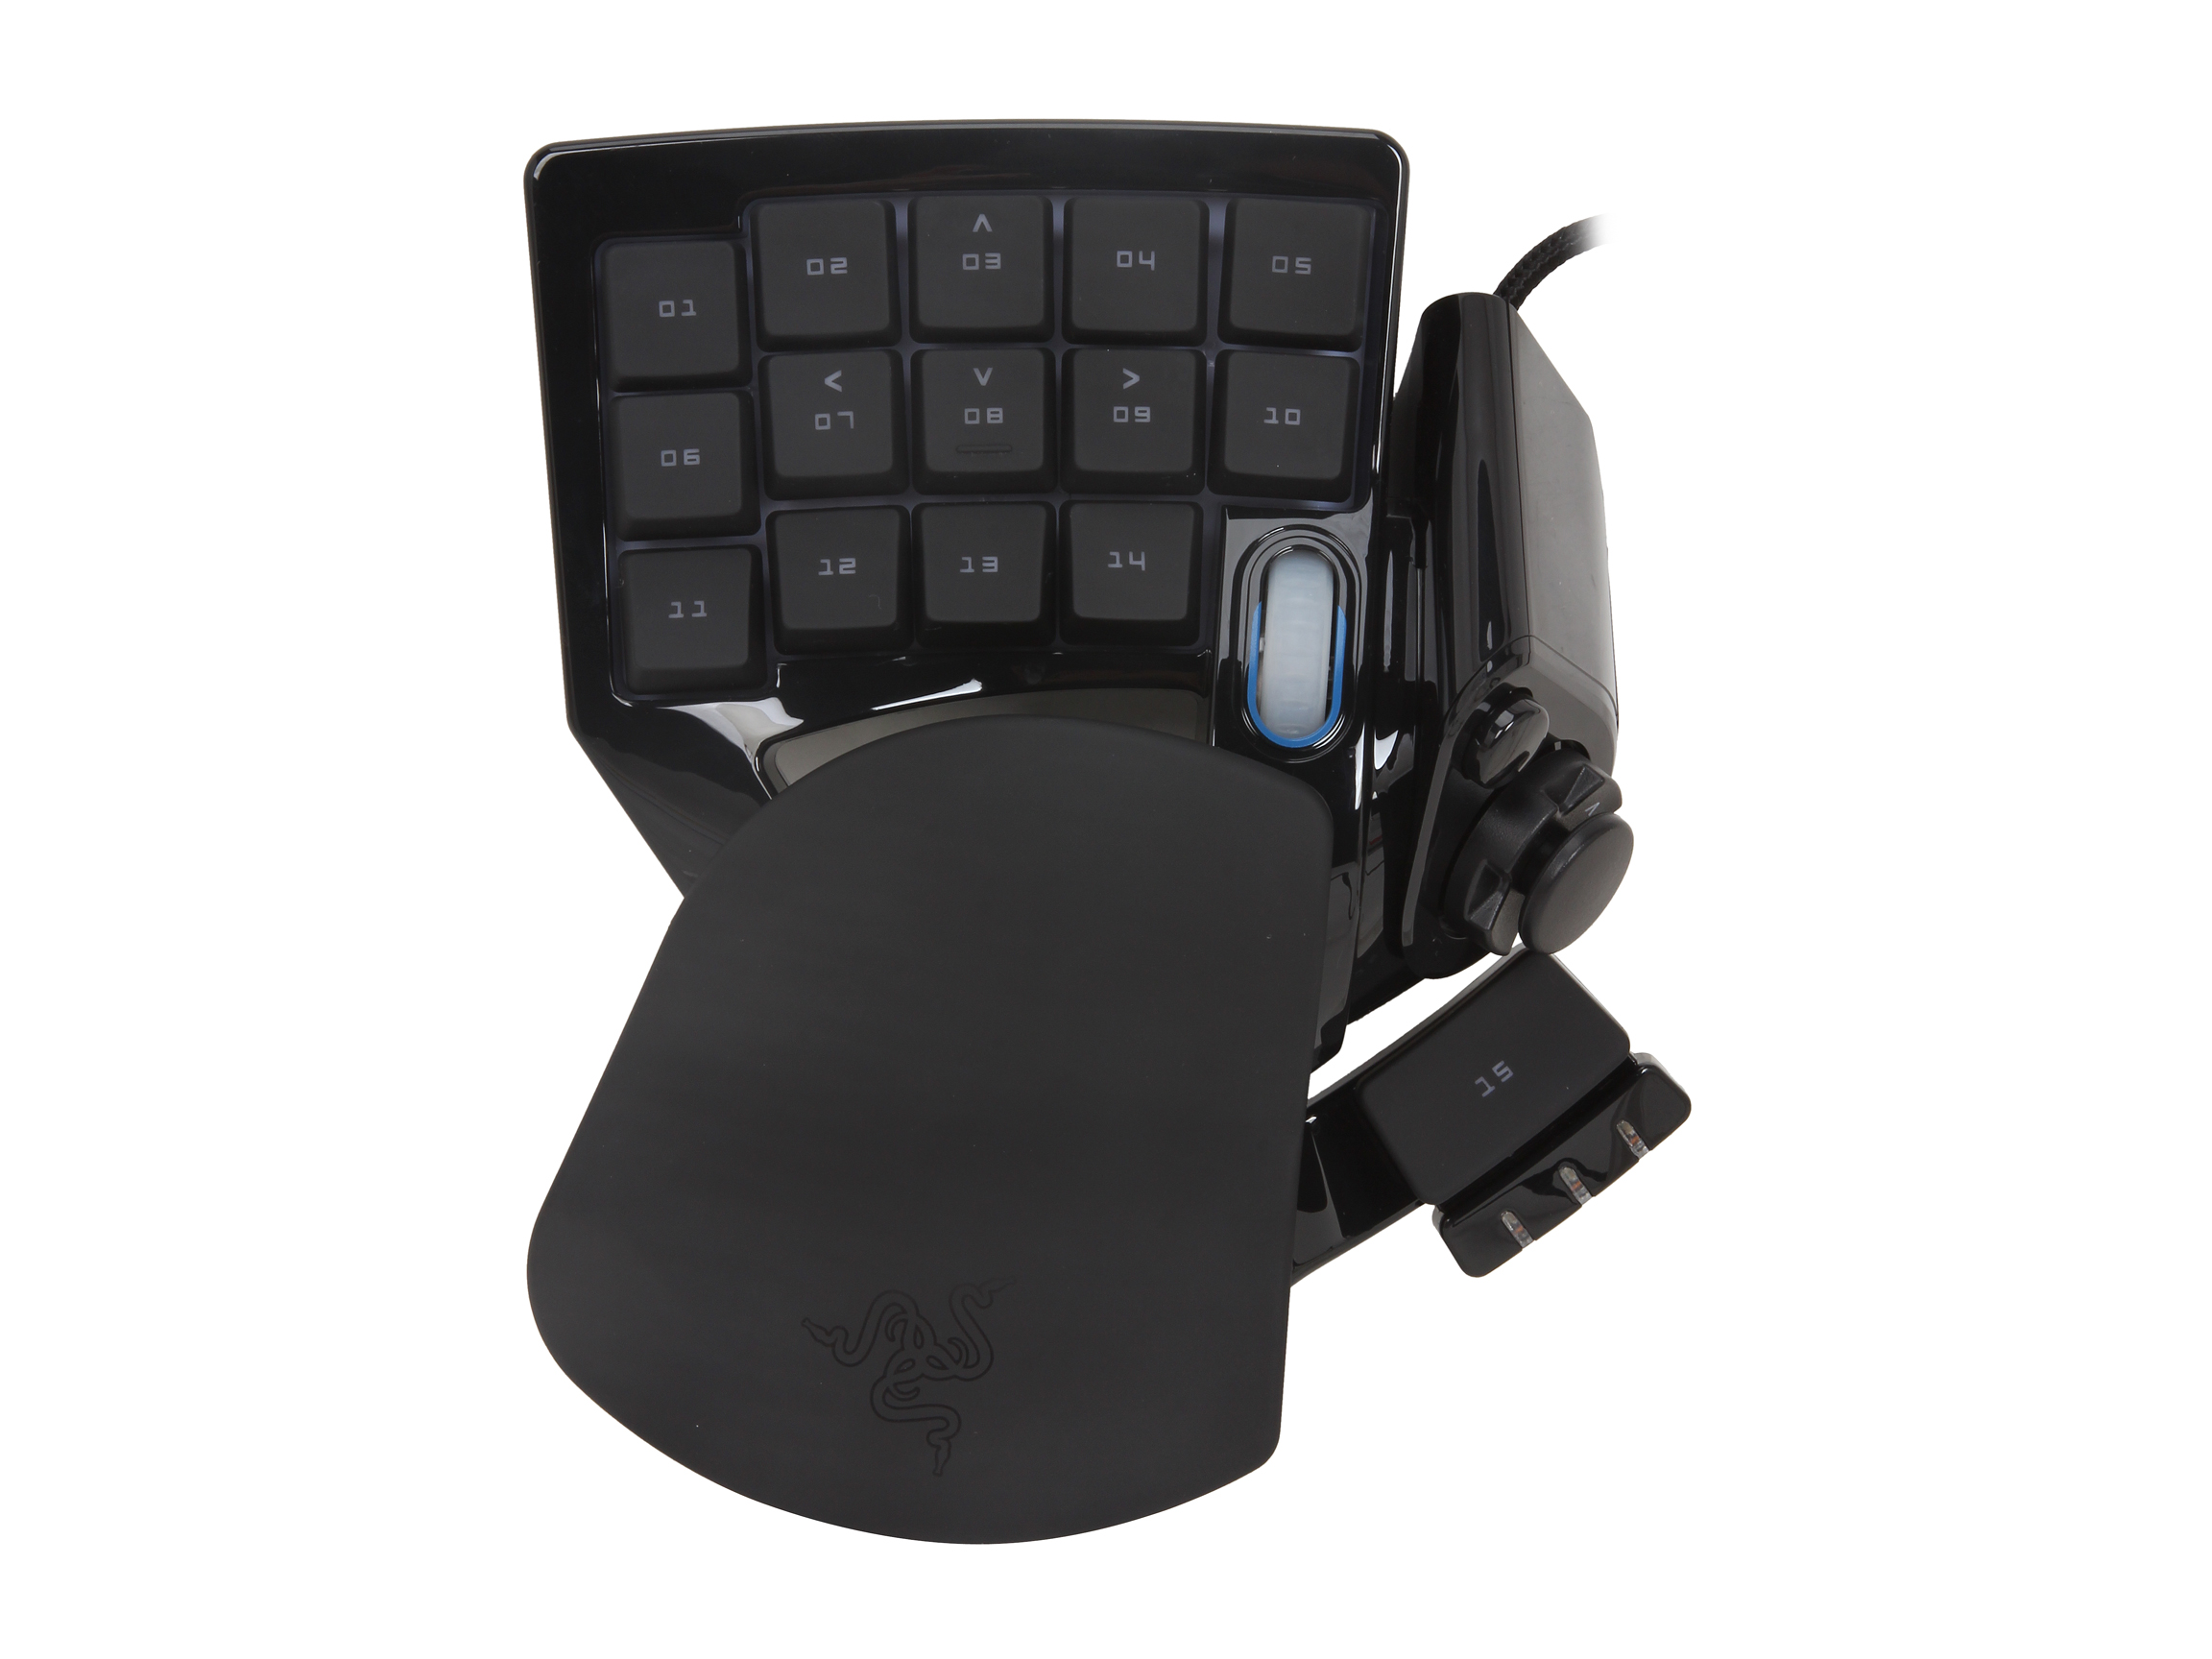 Refurbished: RAZER Nostromo RZ07-00490100 16 fully programmable hyperesponse keys Normal Keys USB Wired Gaming Expert Gaming Keypad